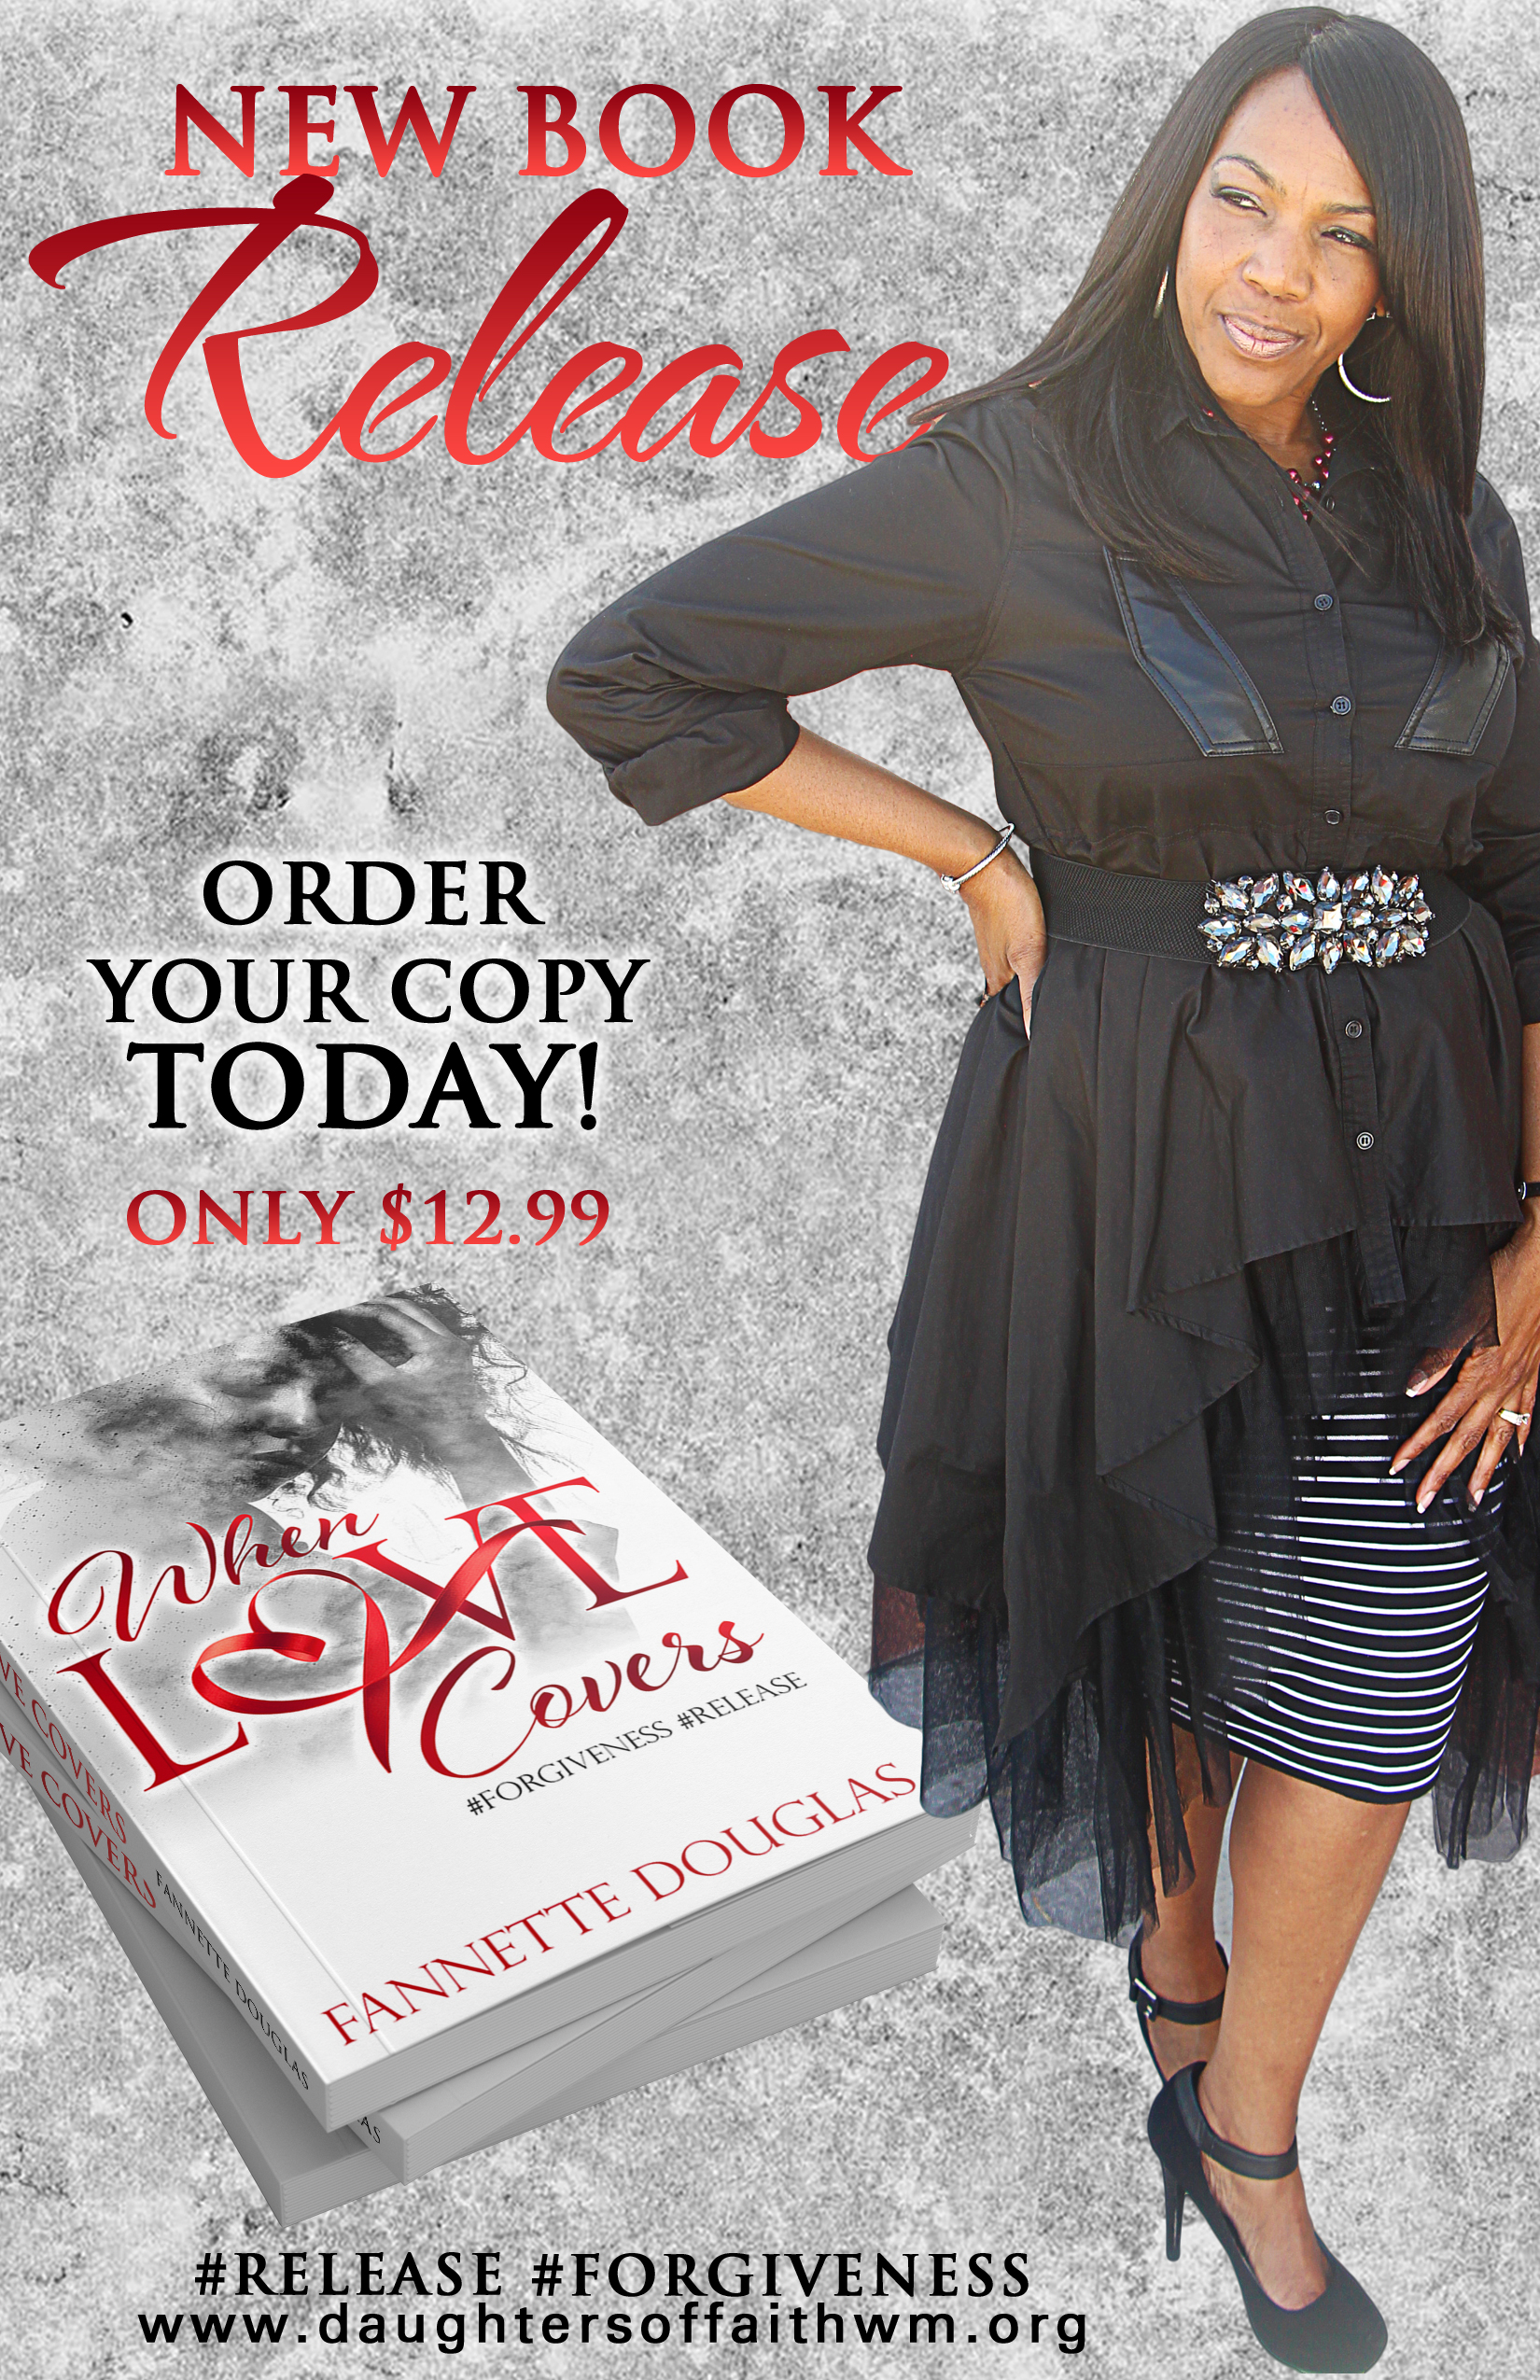 Love-Covers-book-flyer